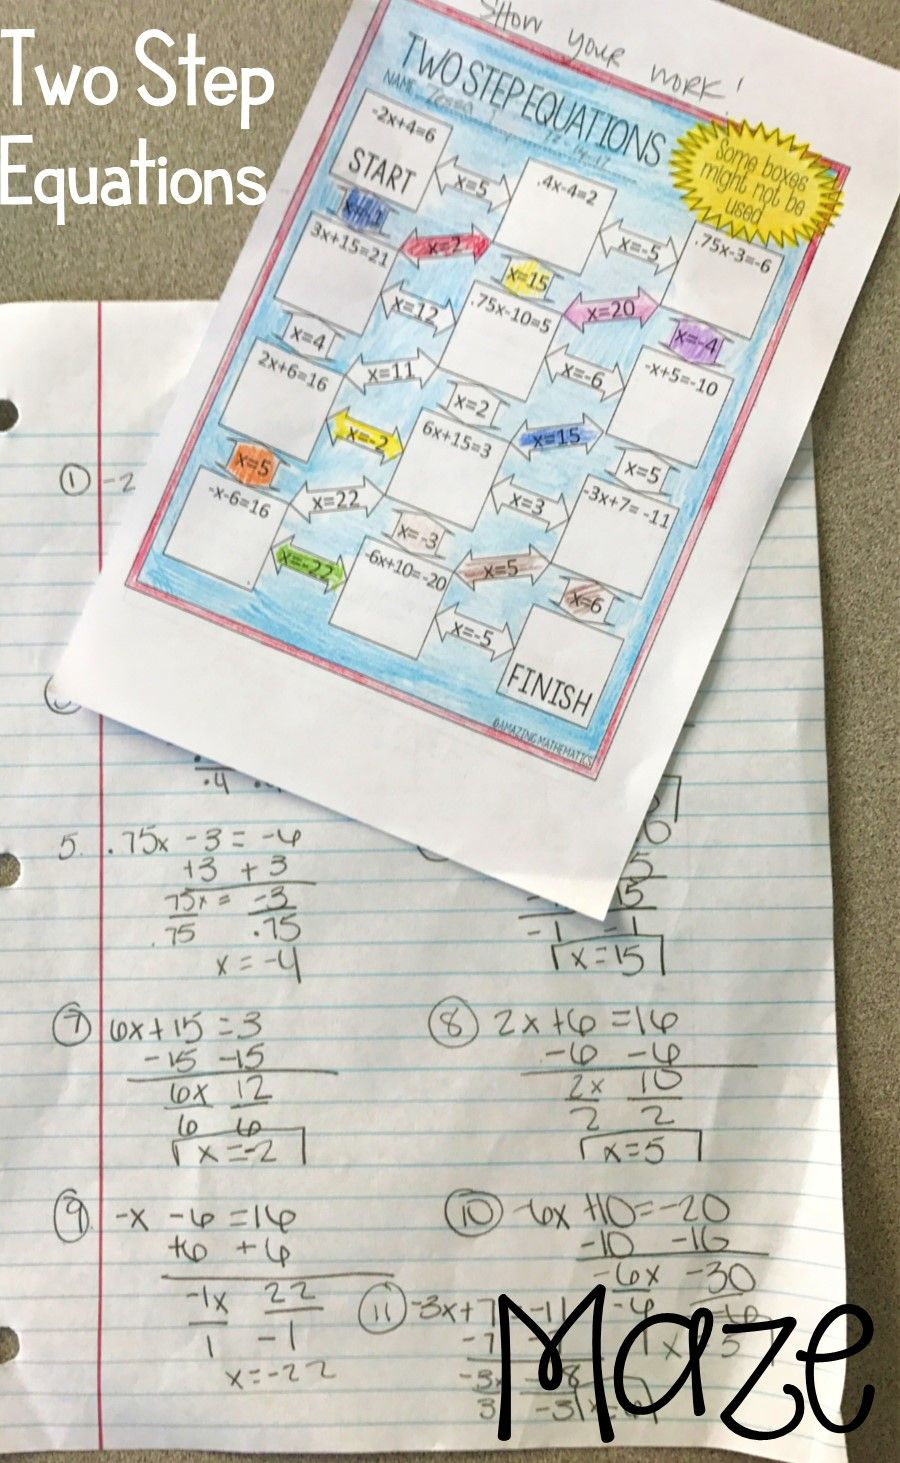 medium resolution of Two Step Equations Worksheet - Maze Activity   Solving equations activity